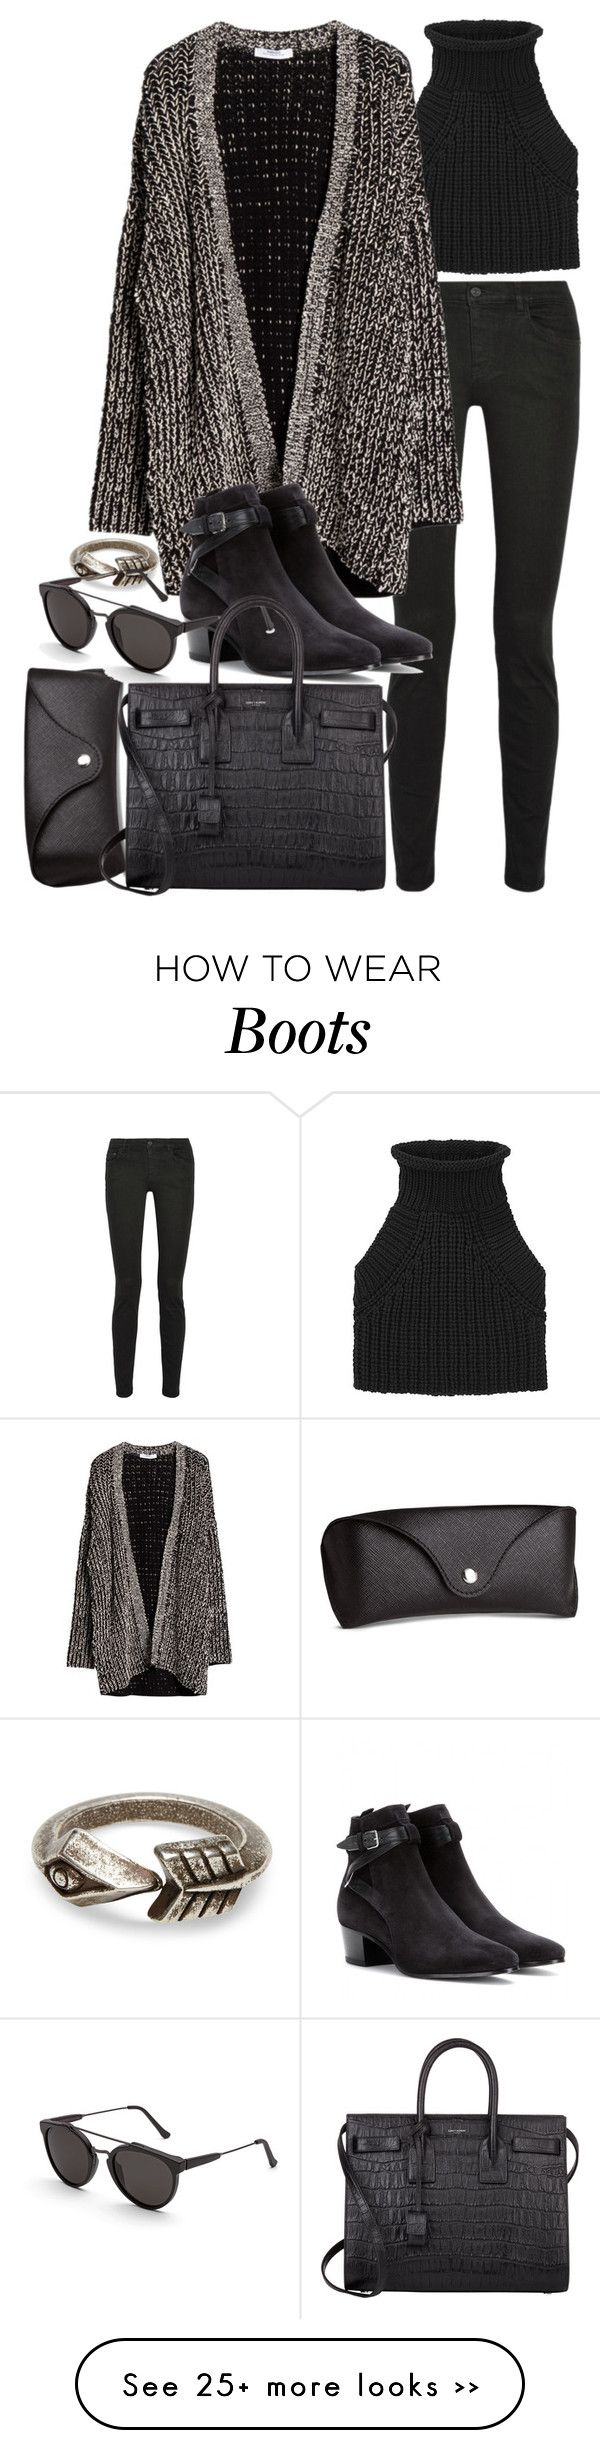 """Untitled #6868"" by nikka-phillips on Polyvore                              …"